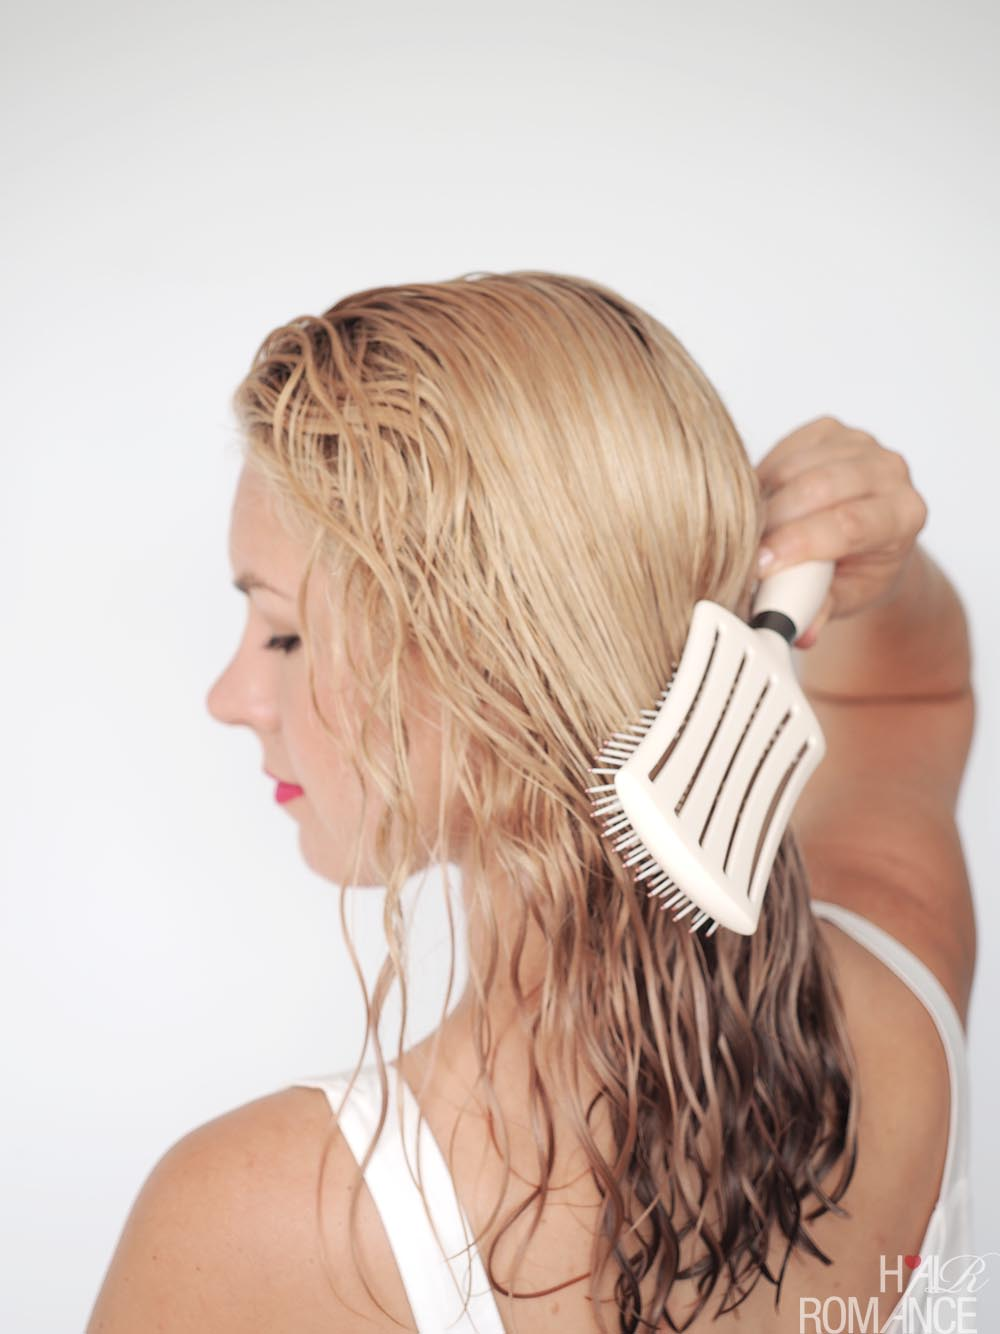 The Ultimate Eco Hair Brush Guide - Hair Romance